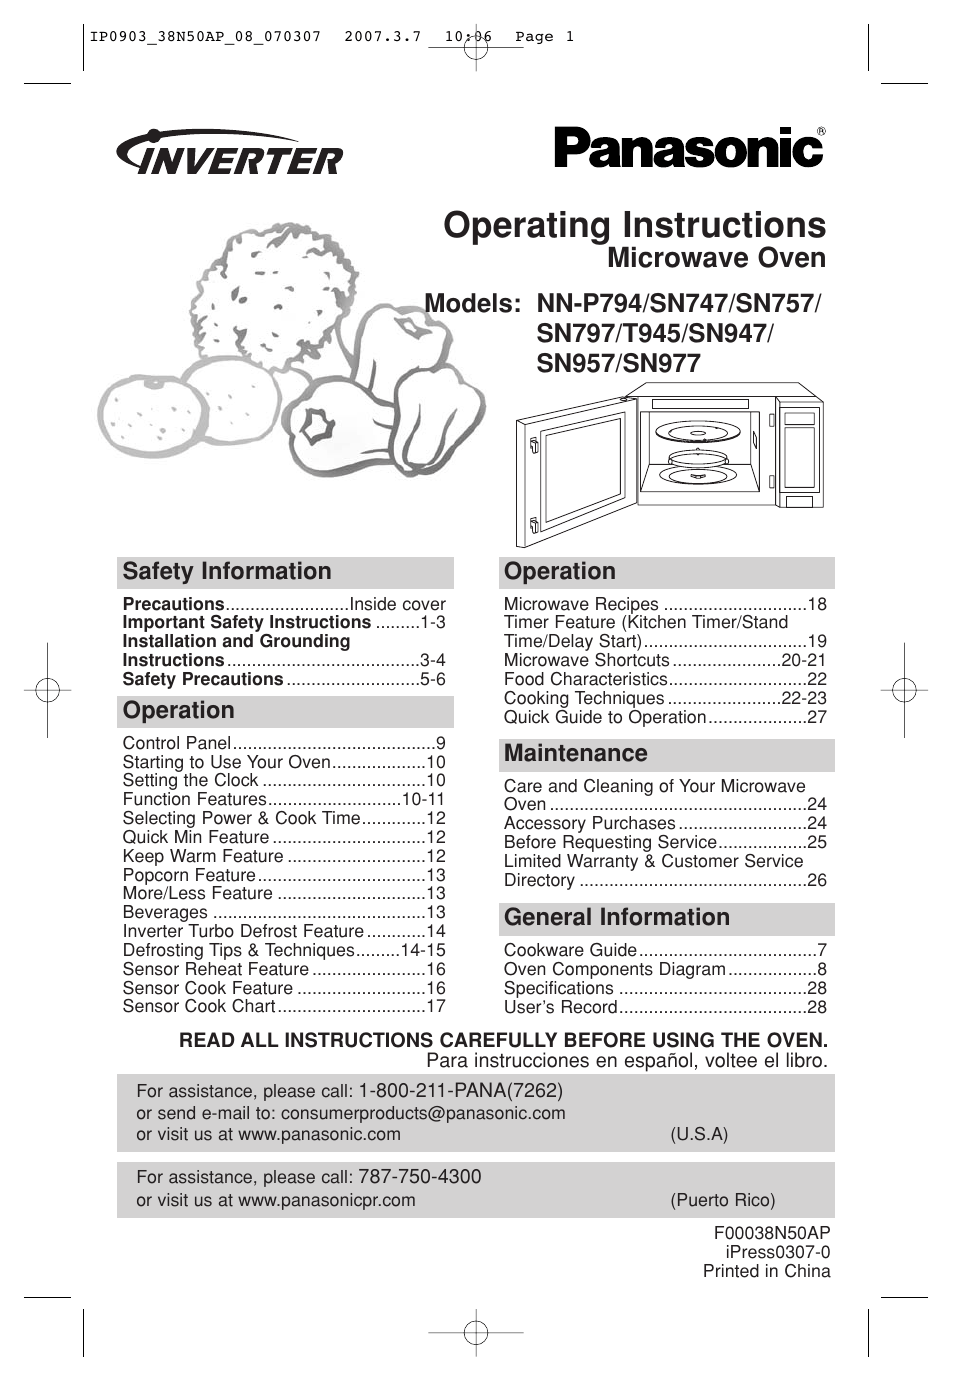 Panasonic Microwave Inverter Manual